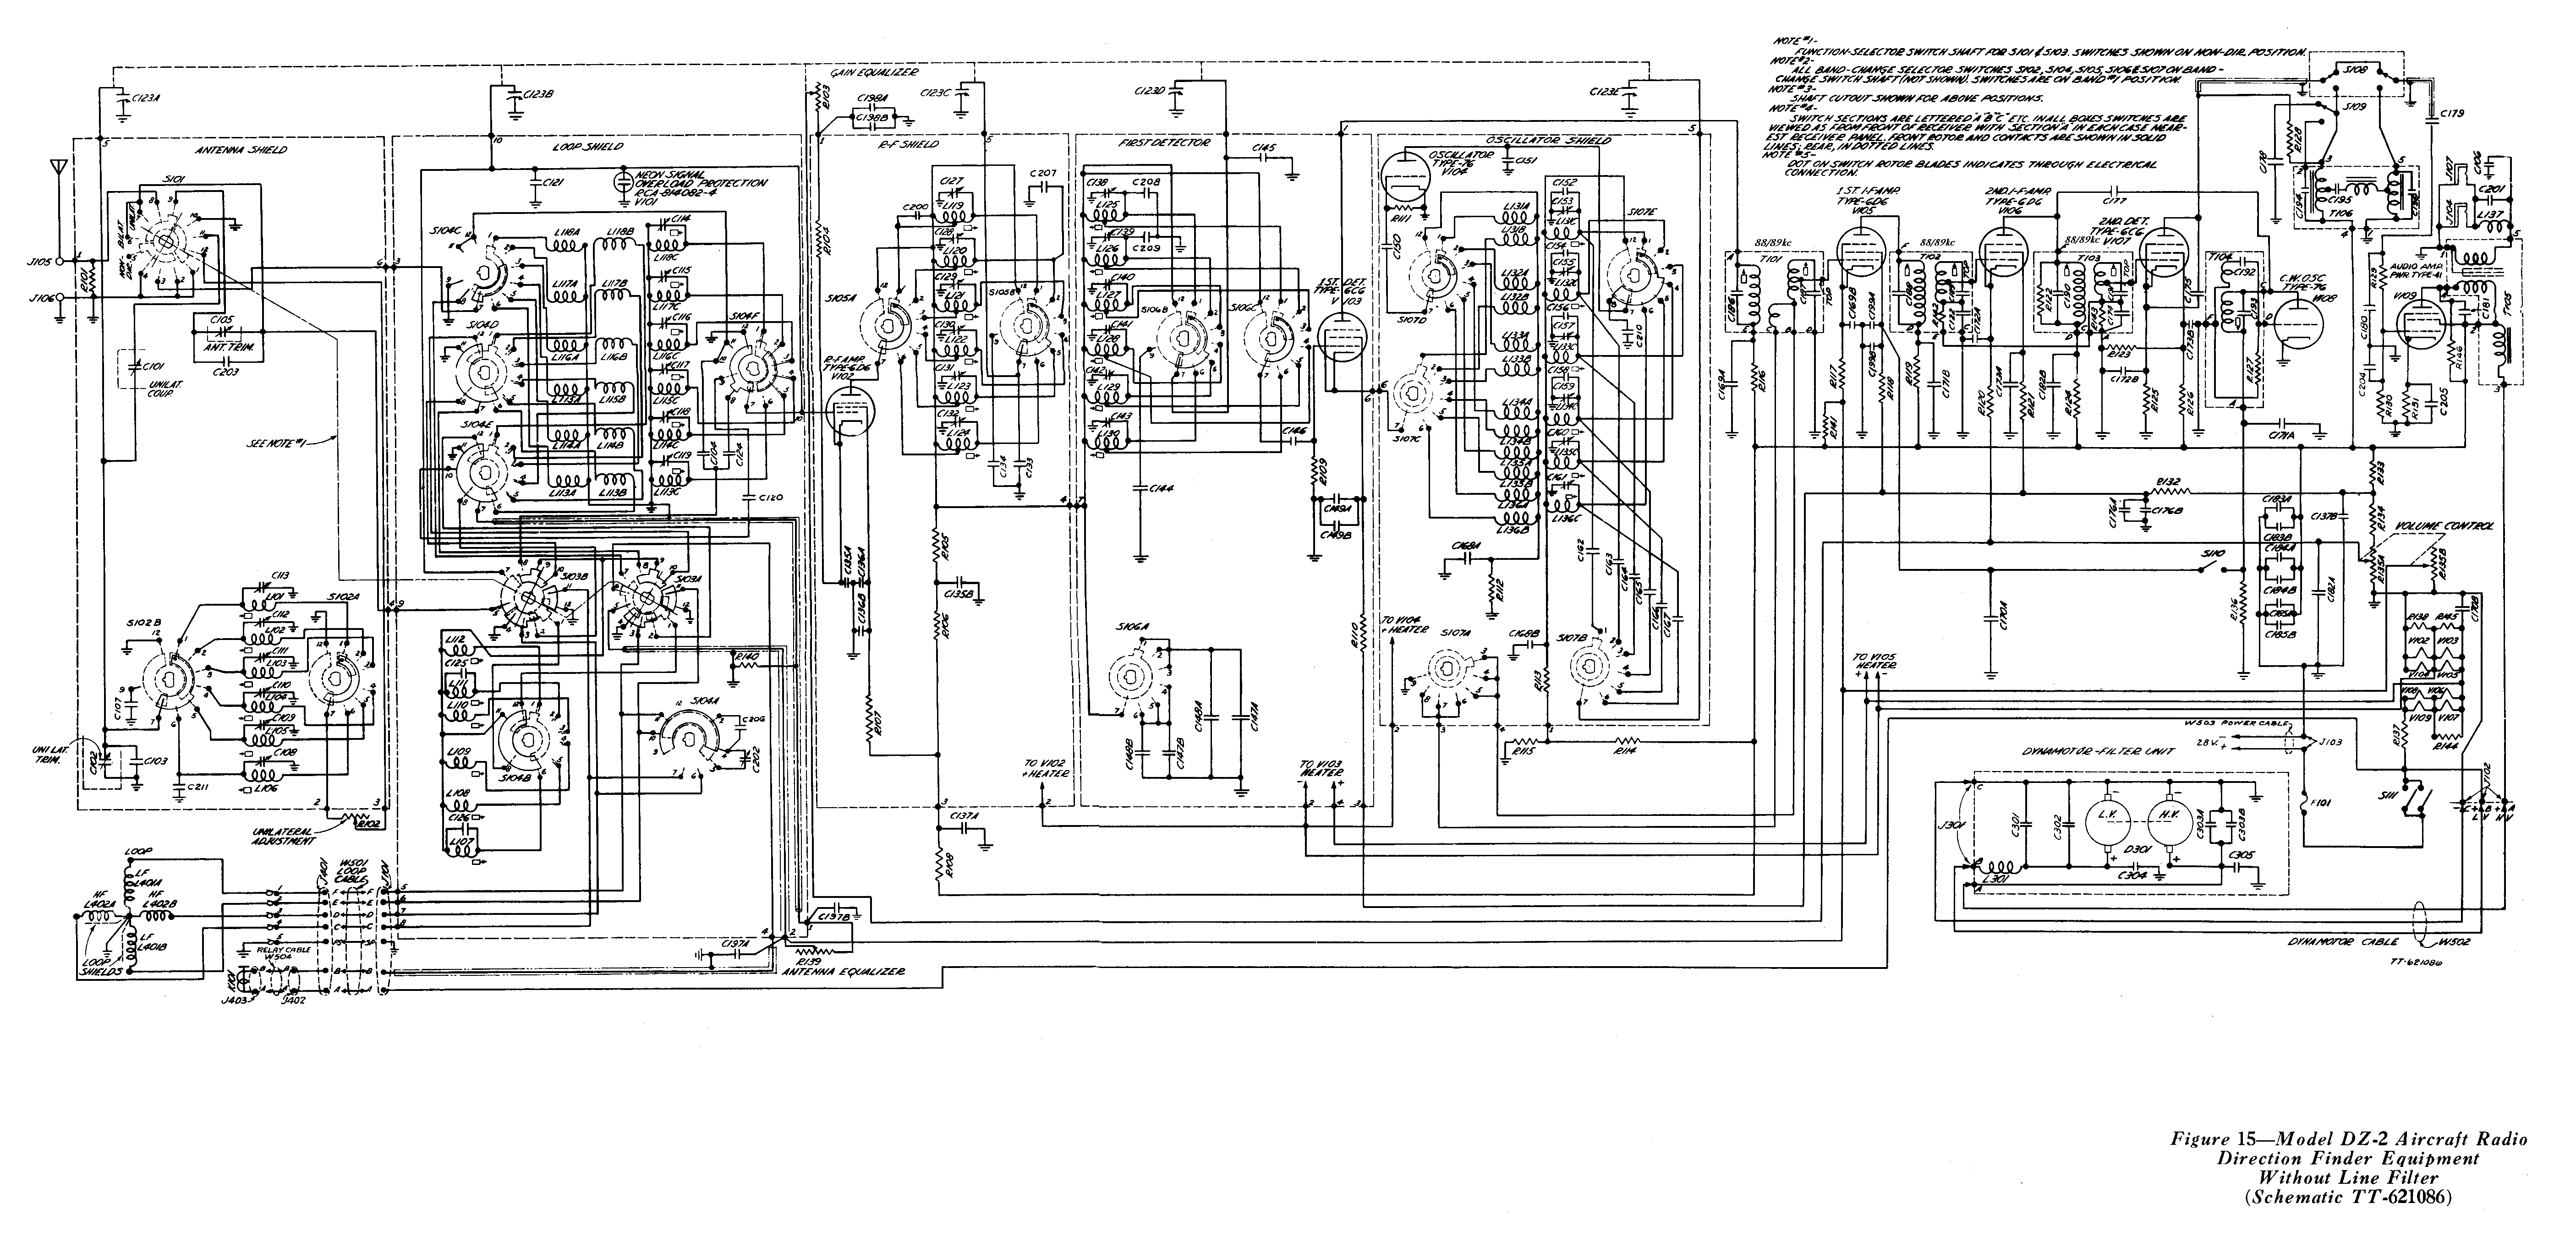 on aircraft wire diagram